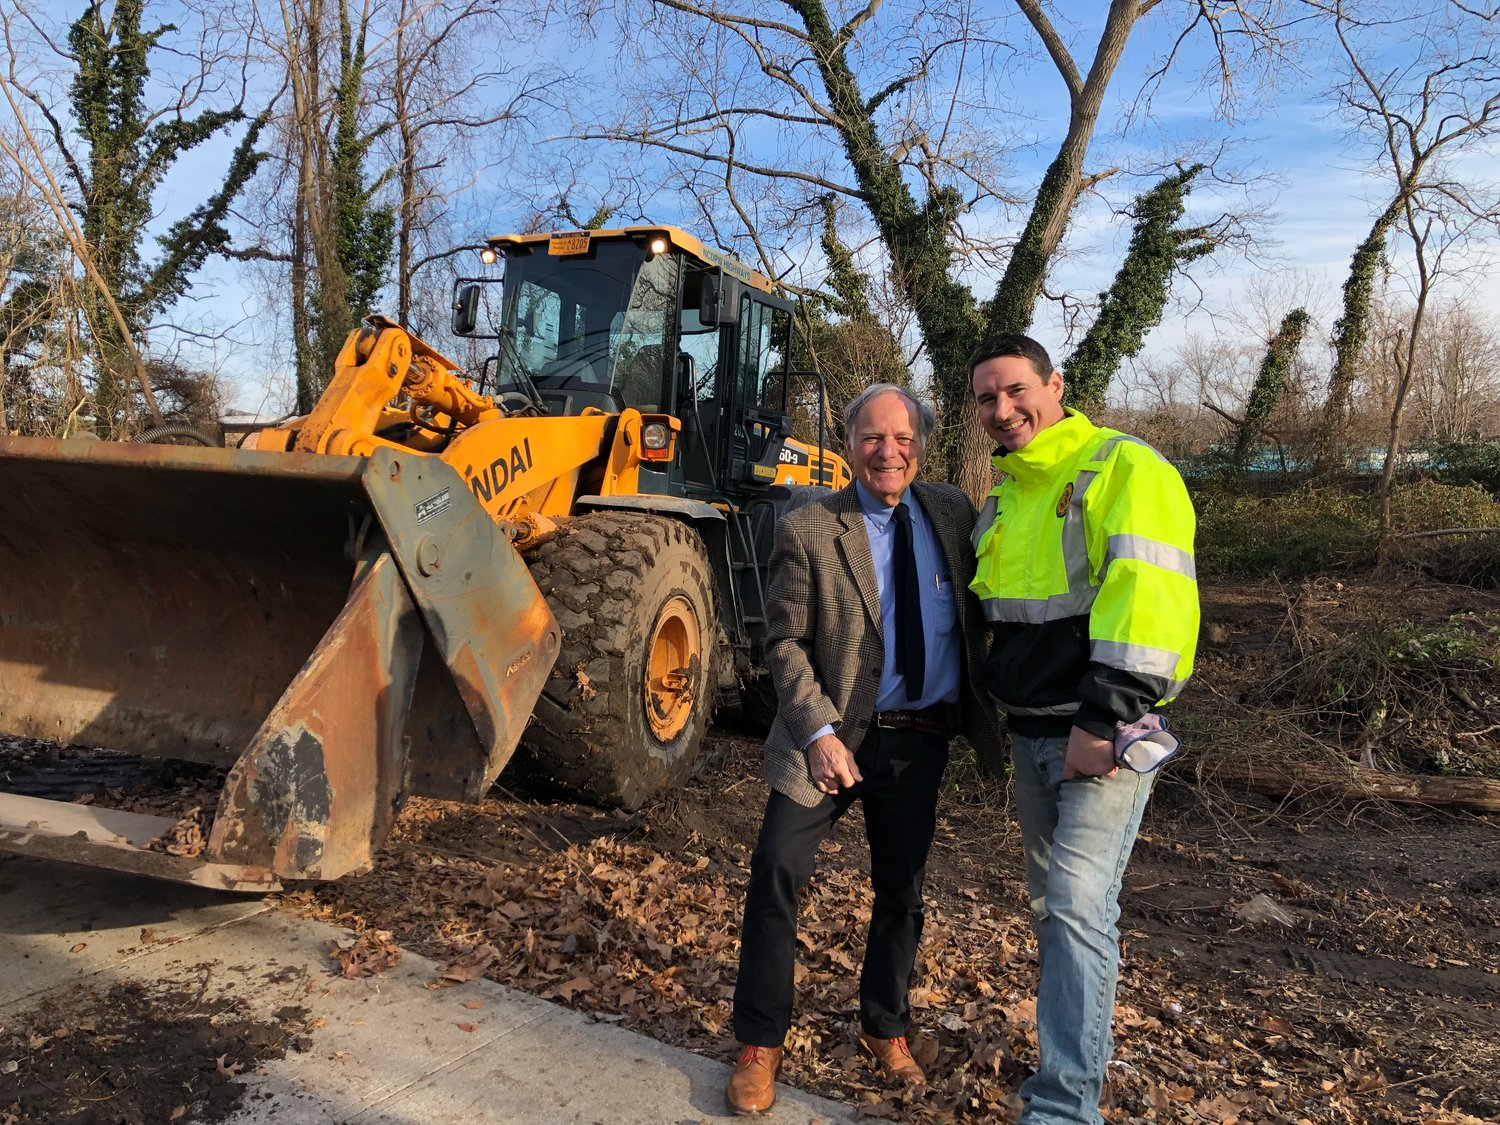 Mayor Robert De Natale met with Anthony Canno, the supervisor for the county's Department of Public Work's, to prepare for an overhaul of the drainage system on Bayville Road at the Tides Motel.